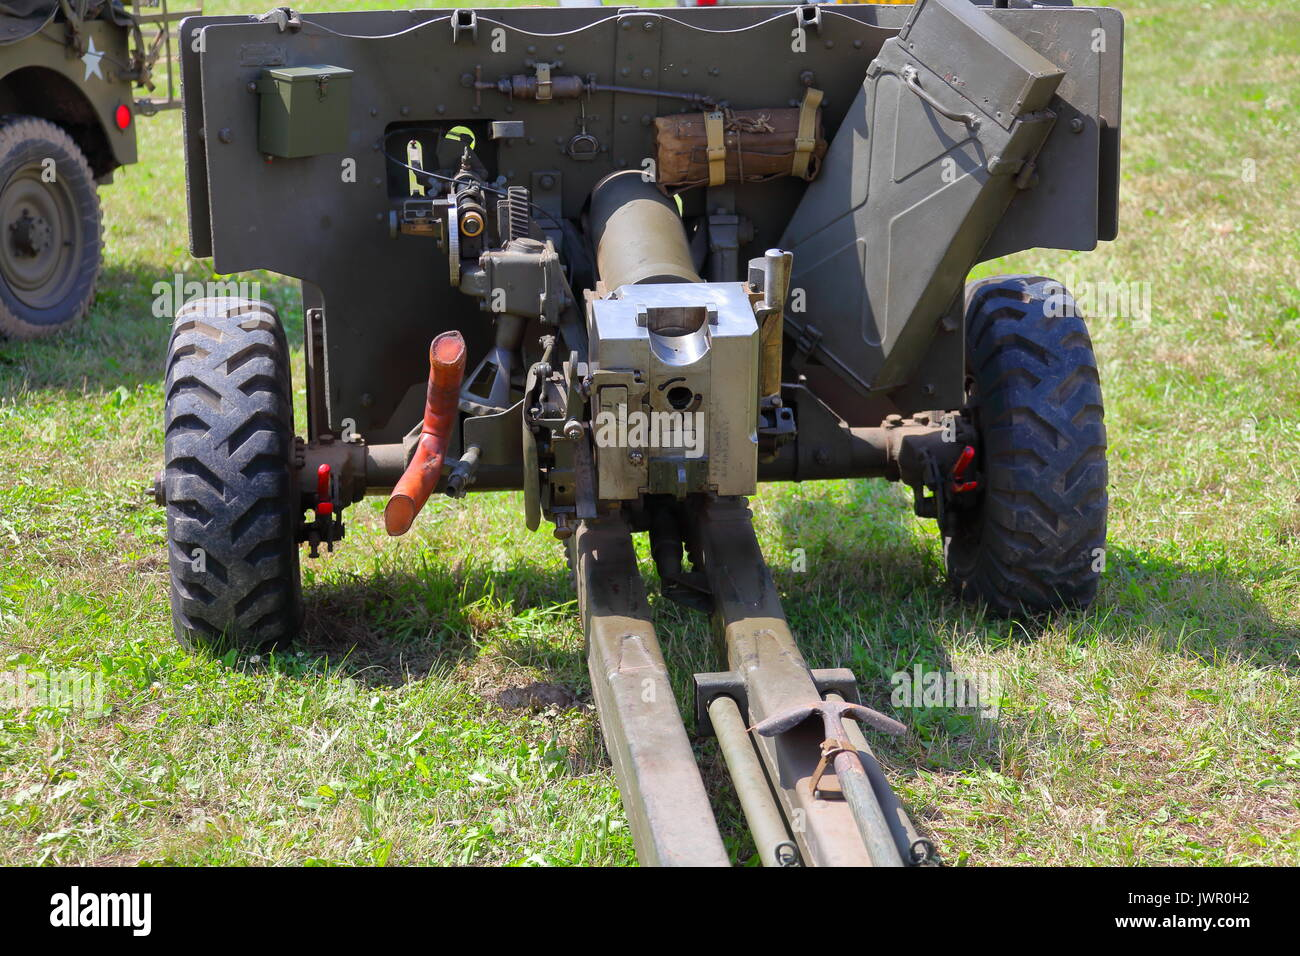 A beautifully restored 6 pounder 7 hundredweight 57 mm anti tank gun on display at Beltring in Kent at the 'war and Peace' show 2017. - Stock Image